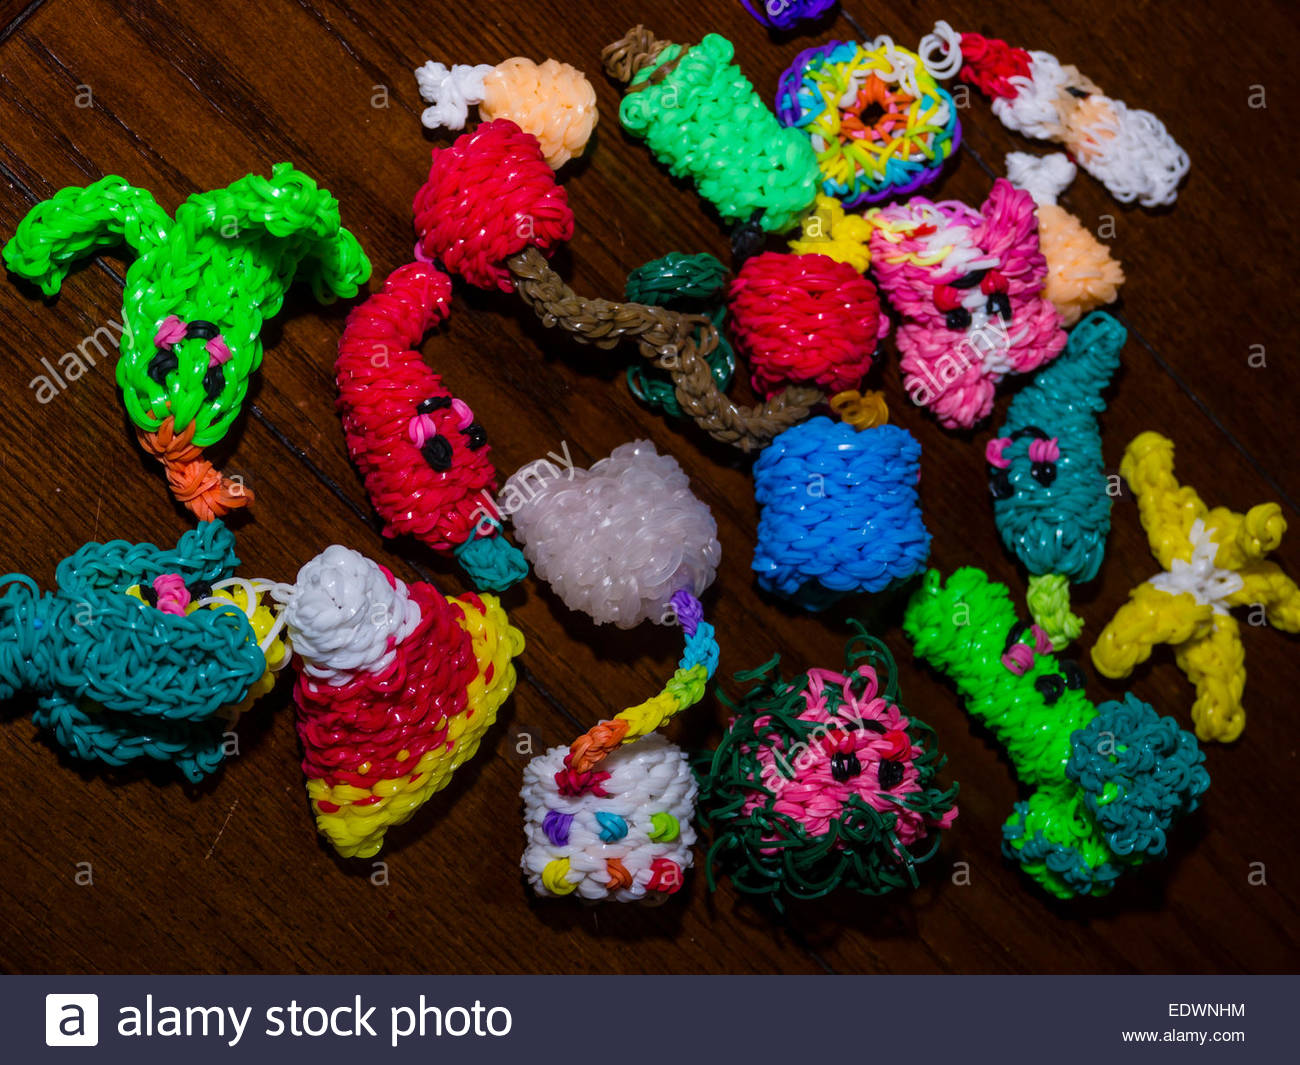 loom bands creations by nine year old Fun Figures - Stock Image